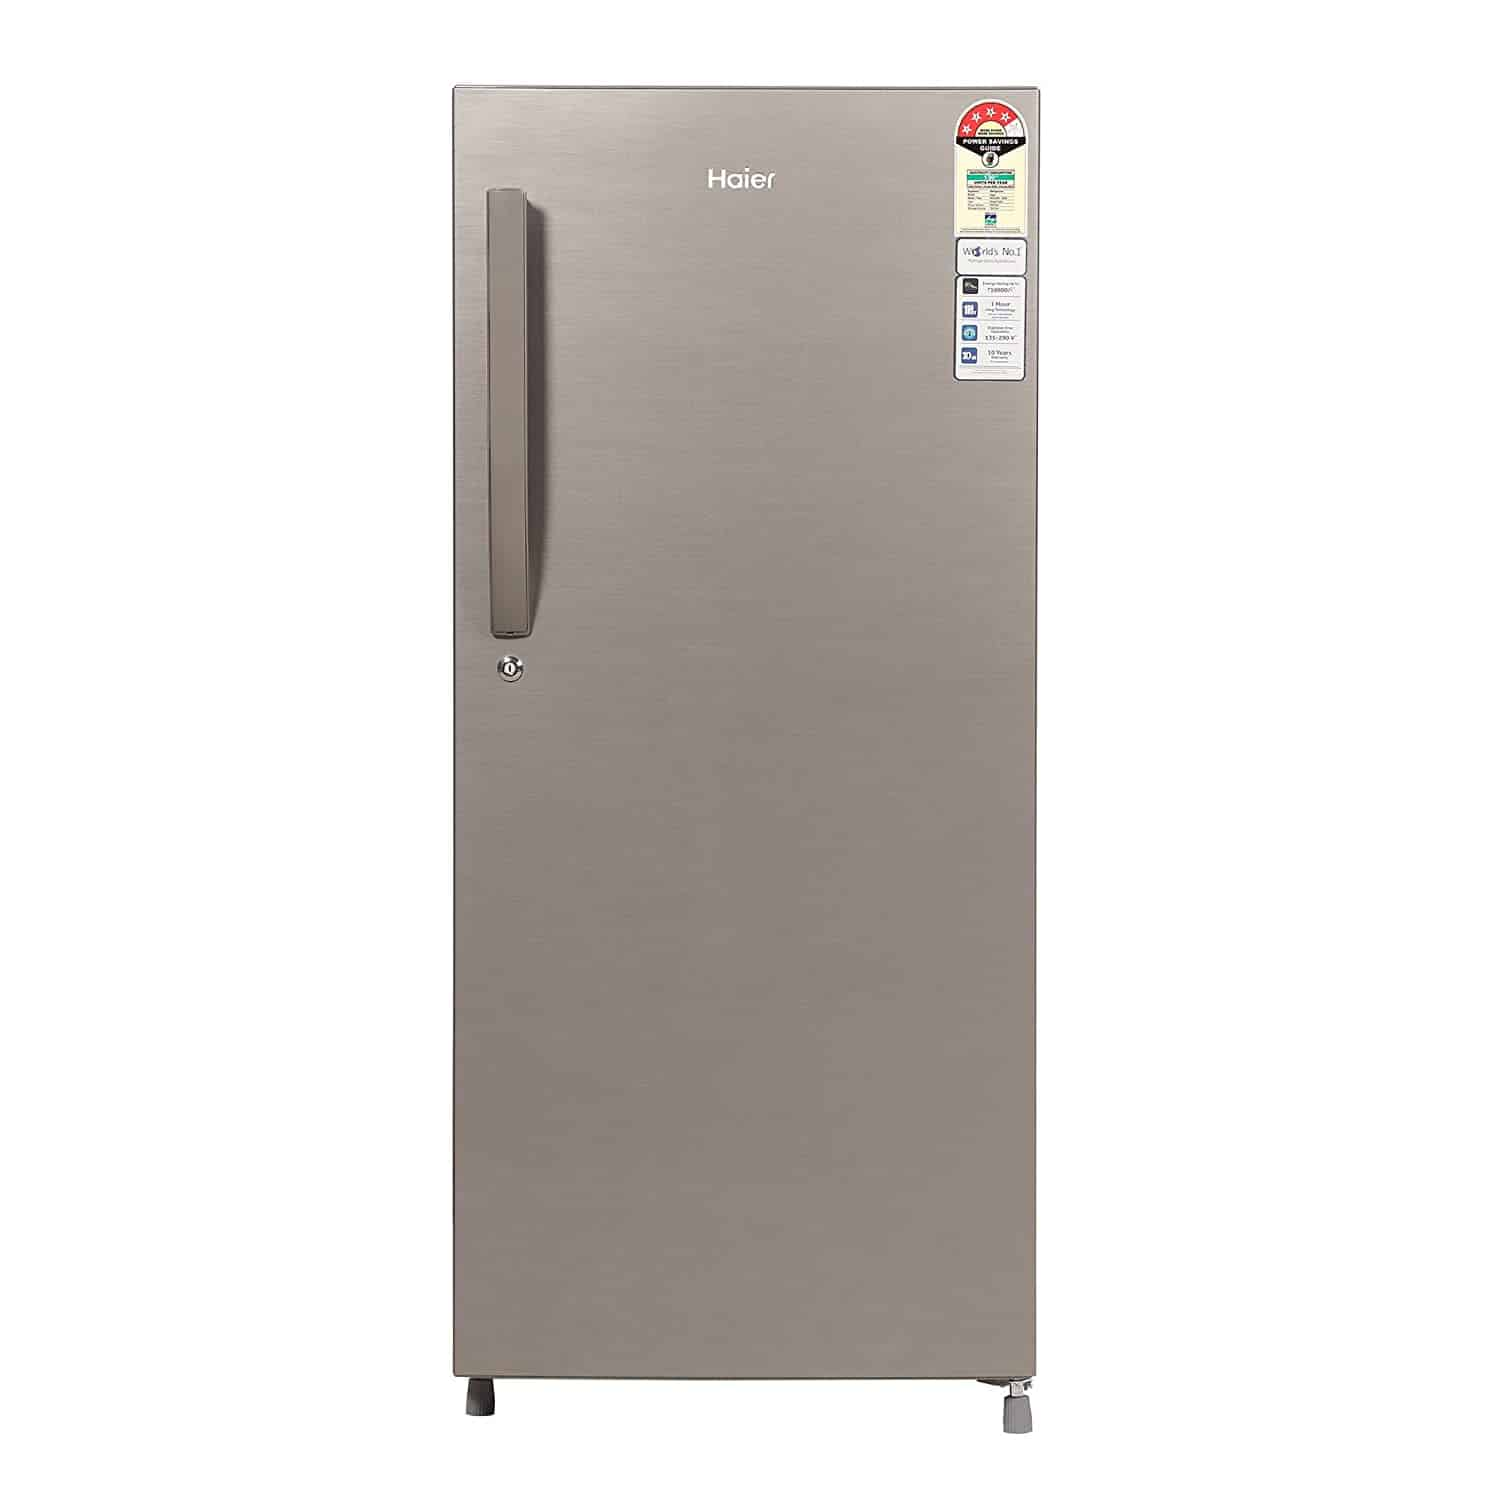 Haier 195L 4-Star Single Door Refrigerator-